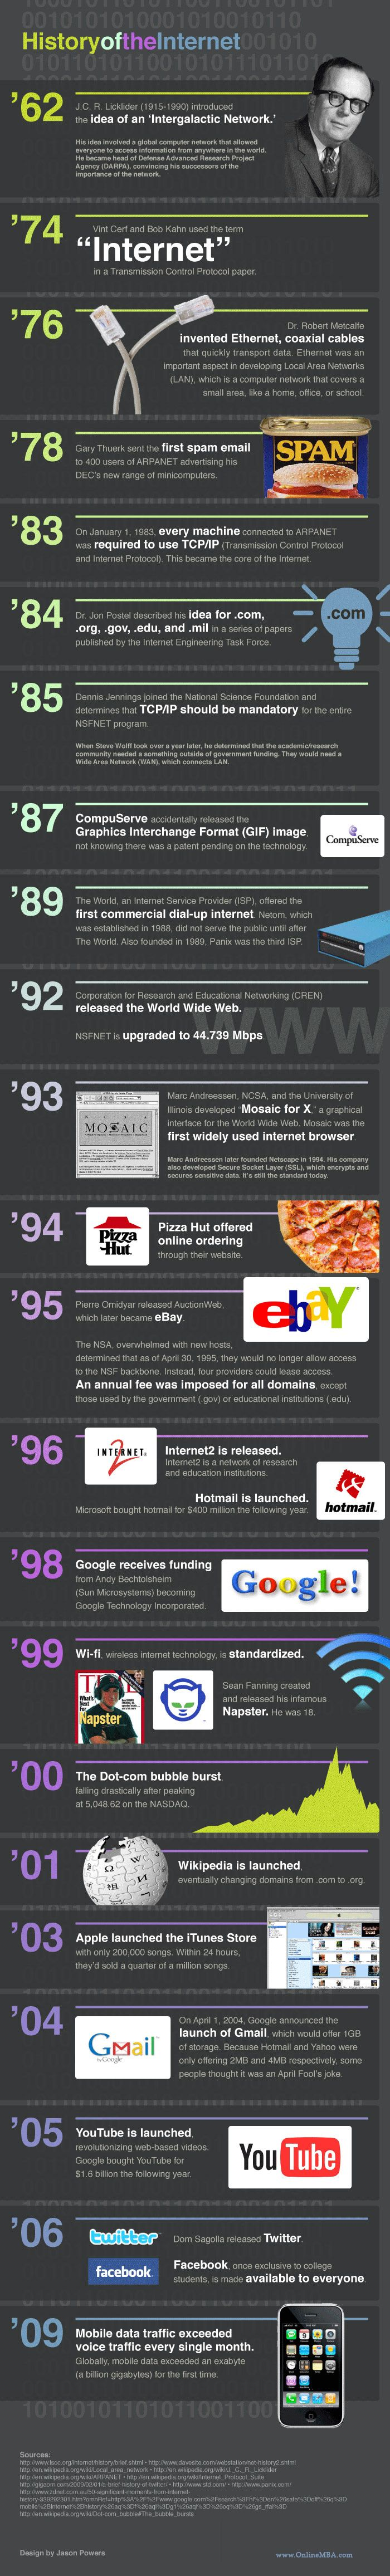 The history of the internet- infographic